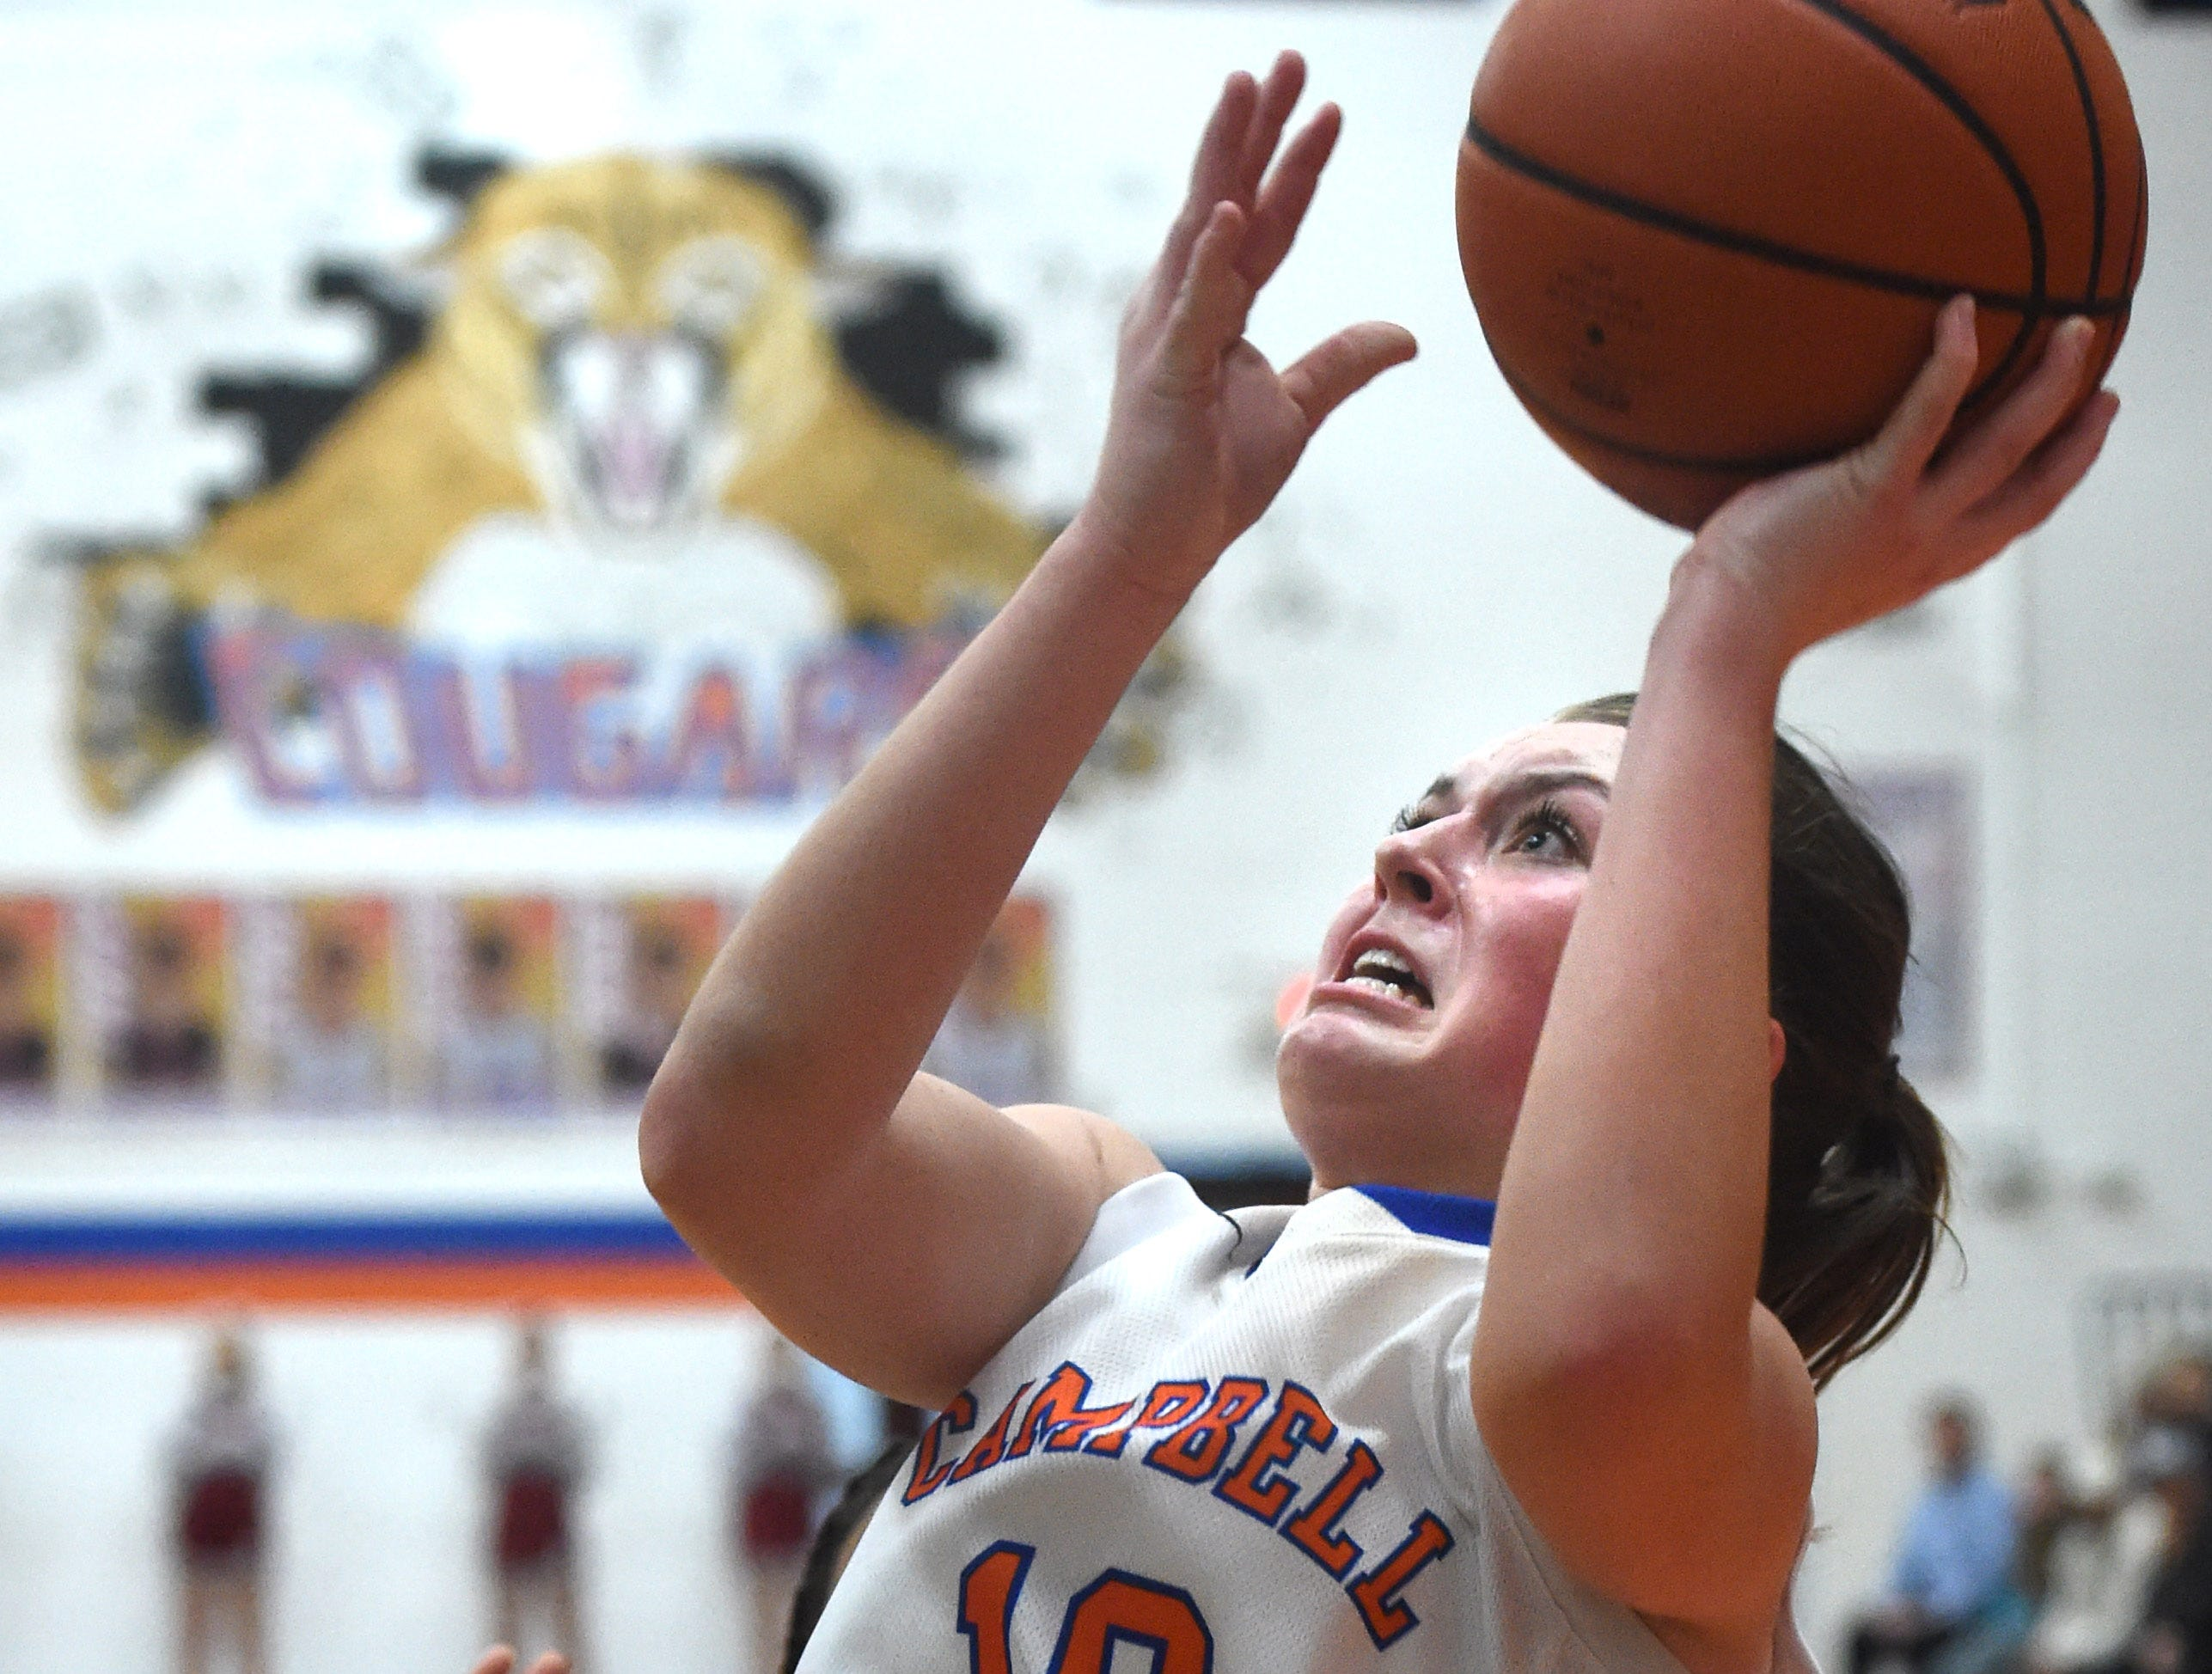 Campbell County's Sarah Cain (10) shoots a layup against Oak Ridge during a high school basketball game at Campbell County High School in Jacksboro on Friday, Feb. 12, 2016.